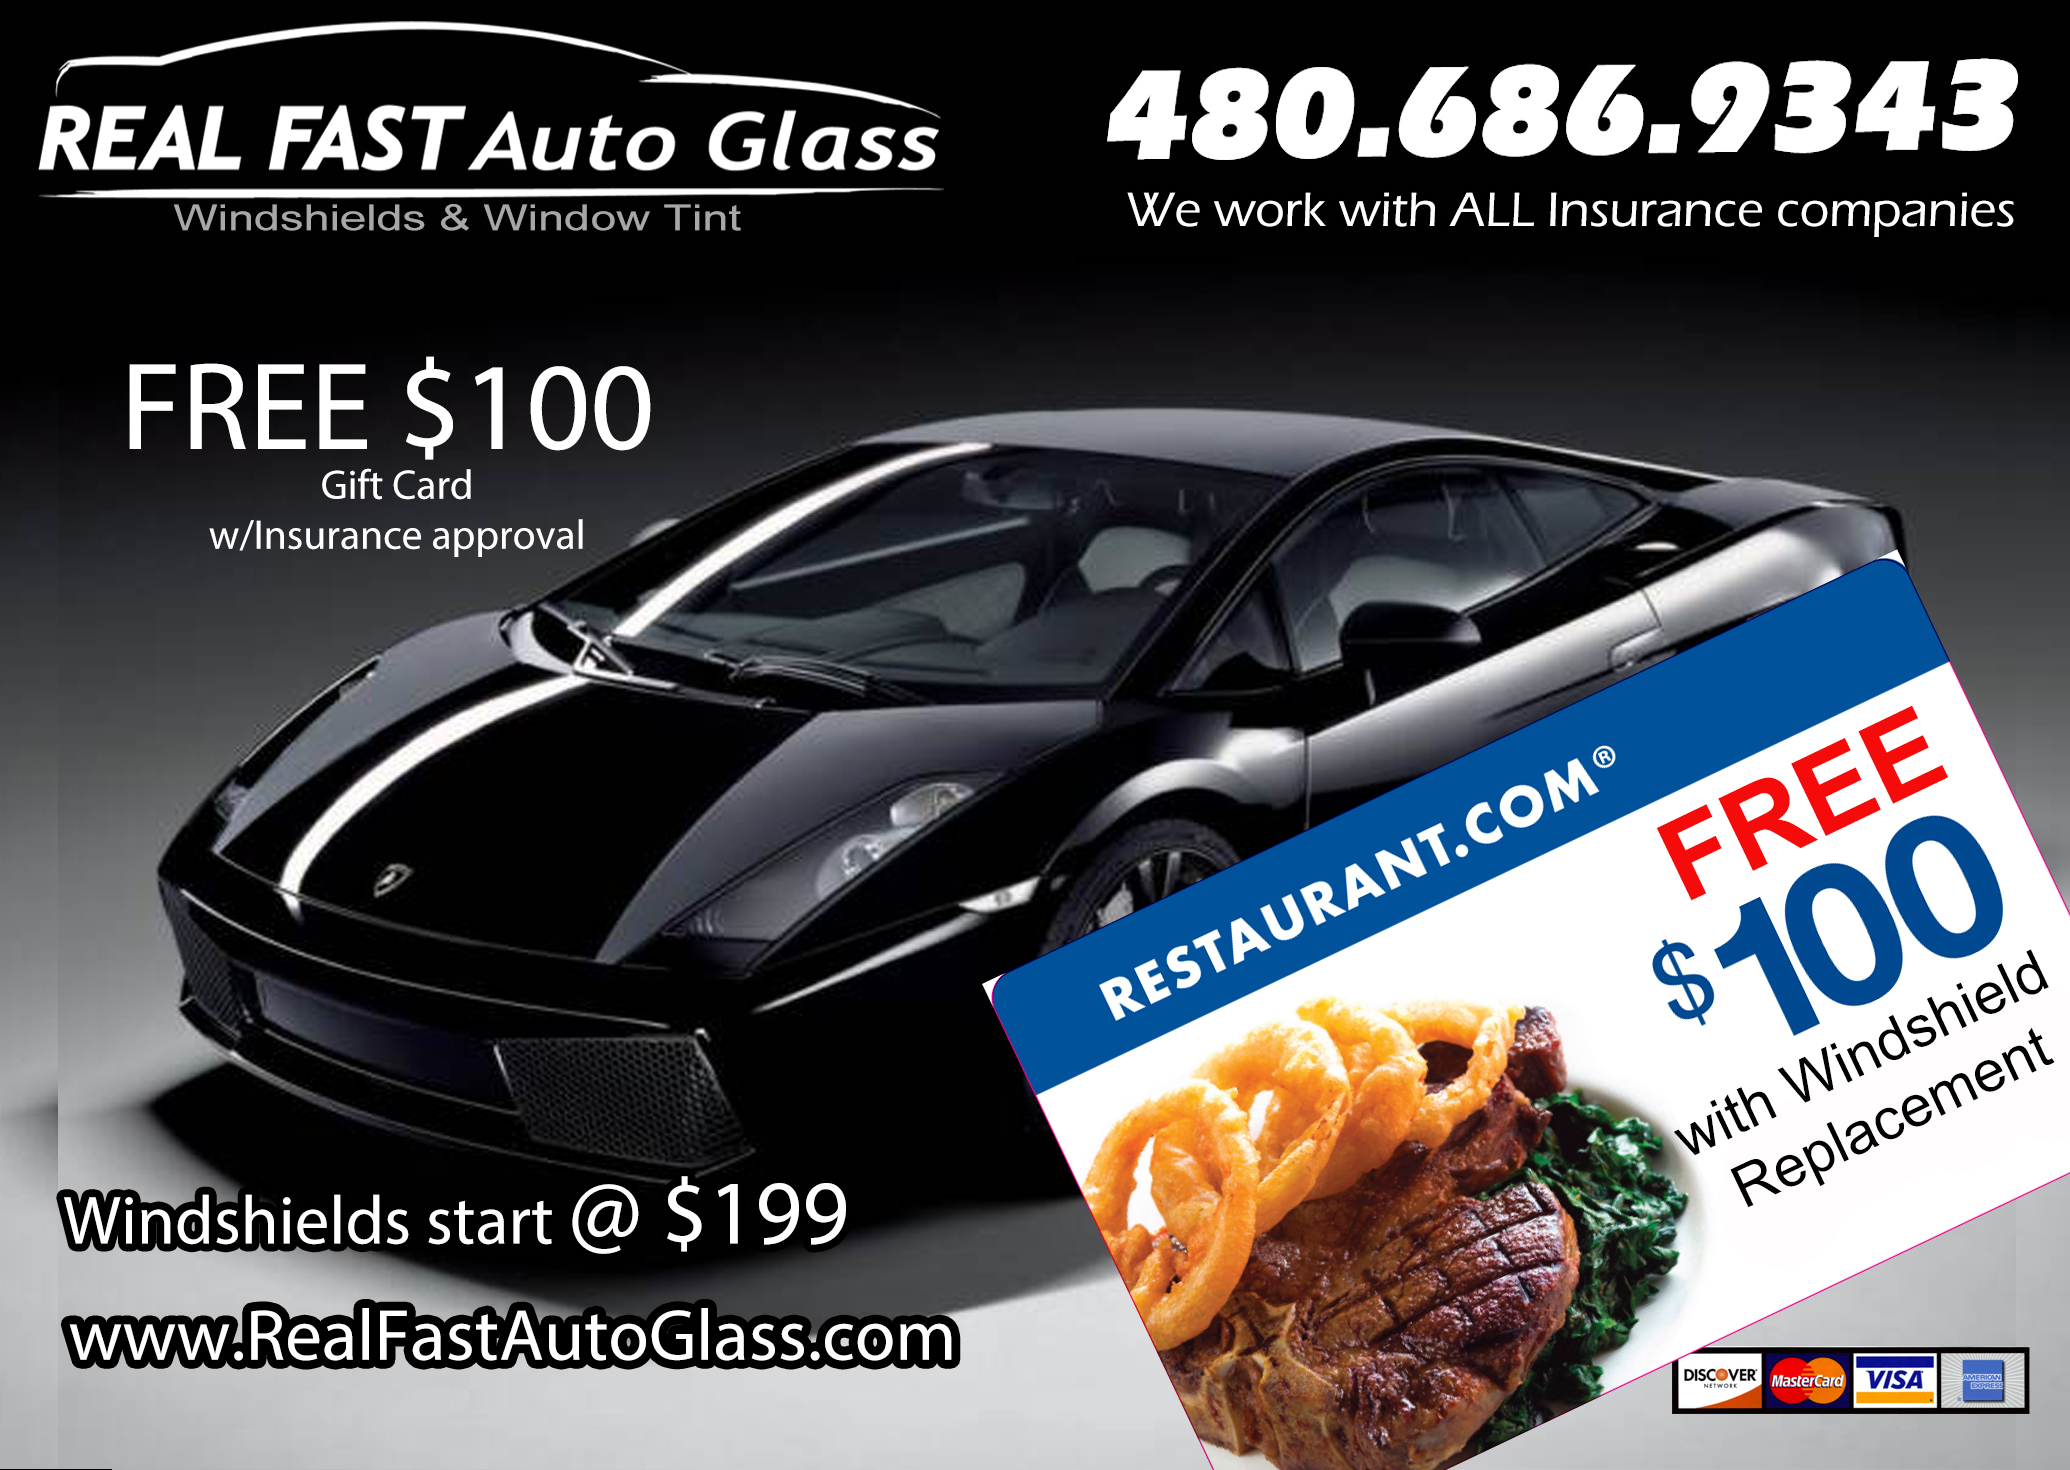 Real Fast Auto Glass